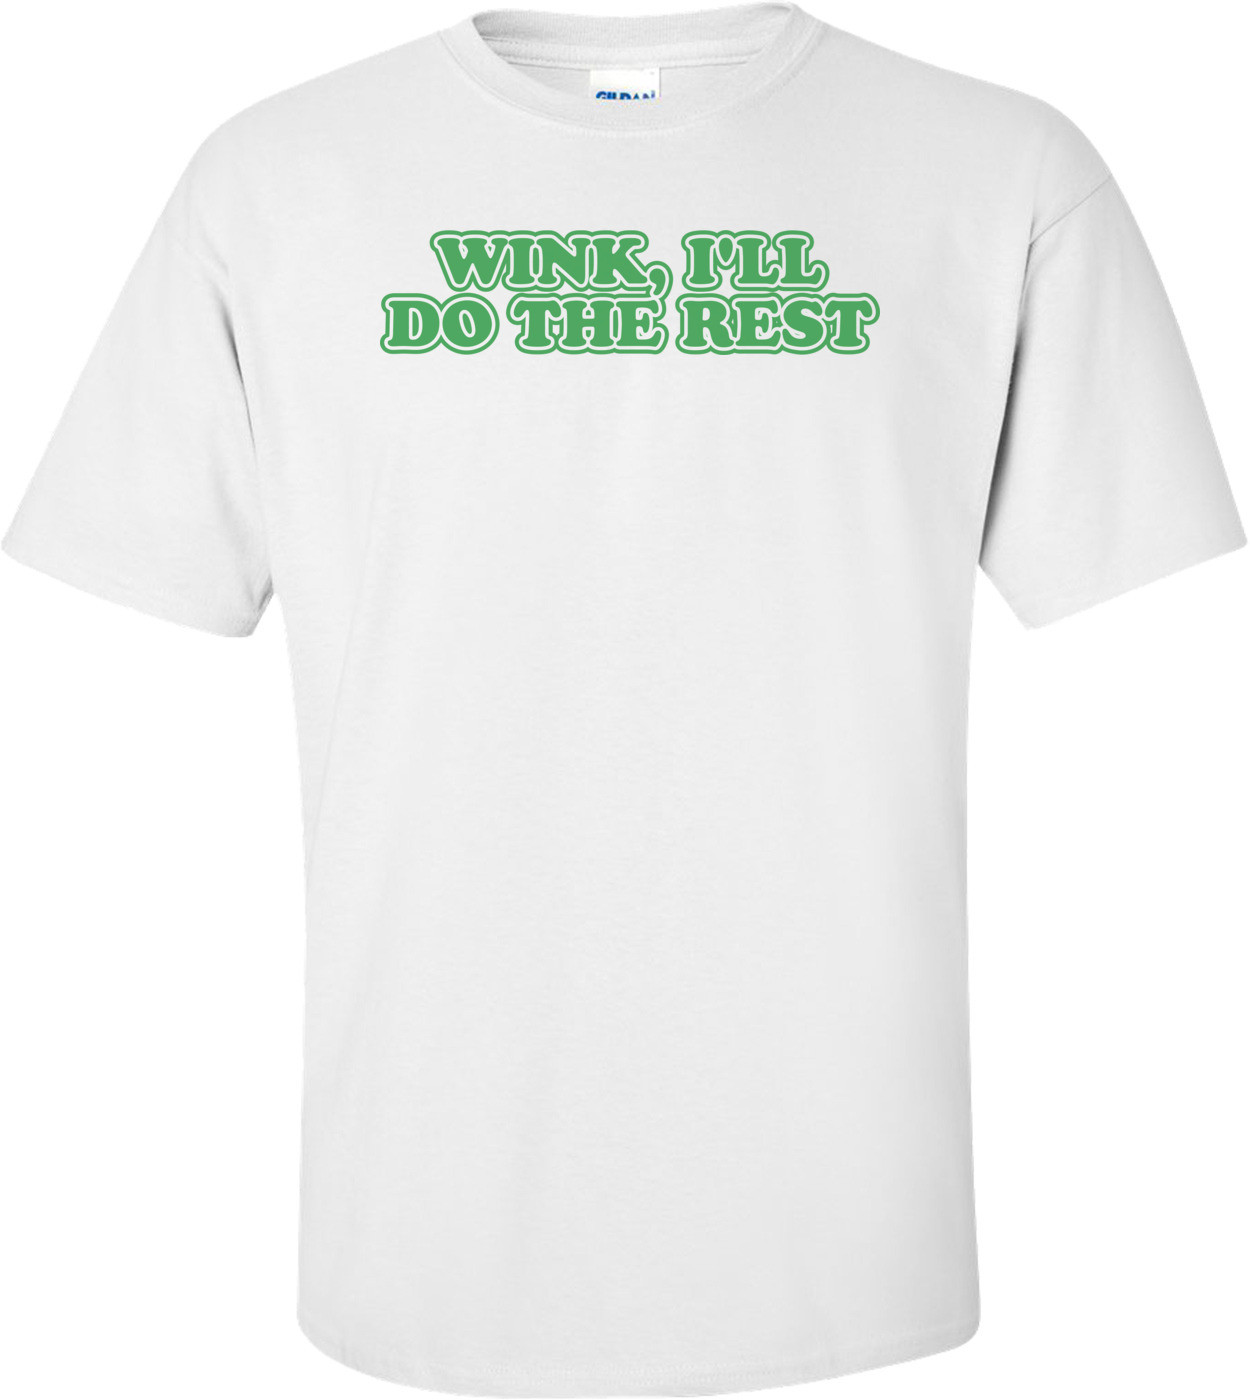 Wink I'll Do The Rest T-shirt